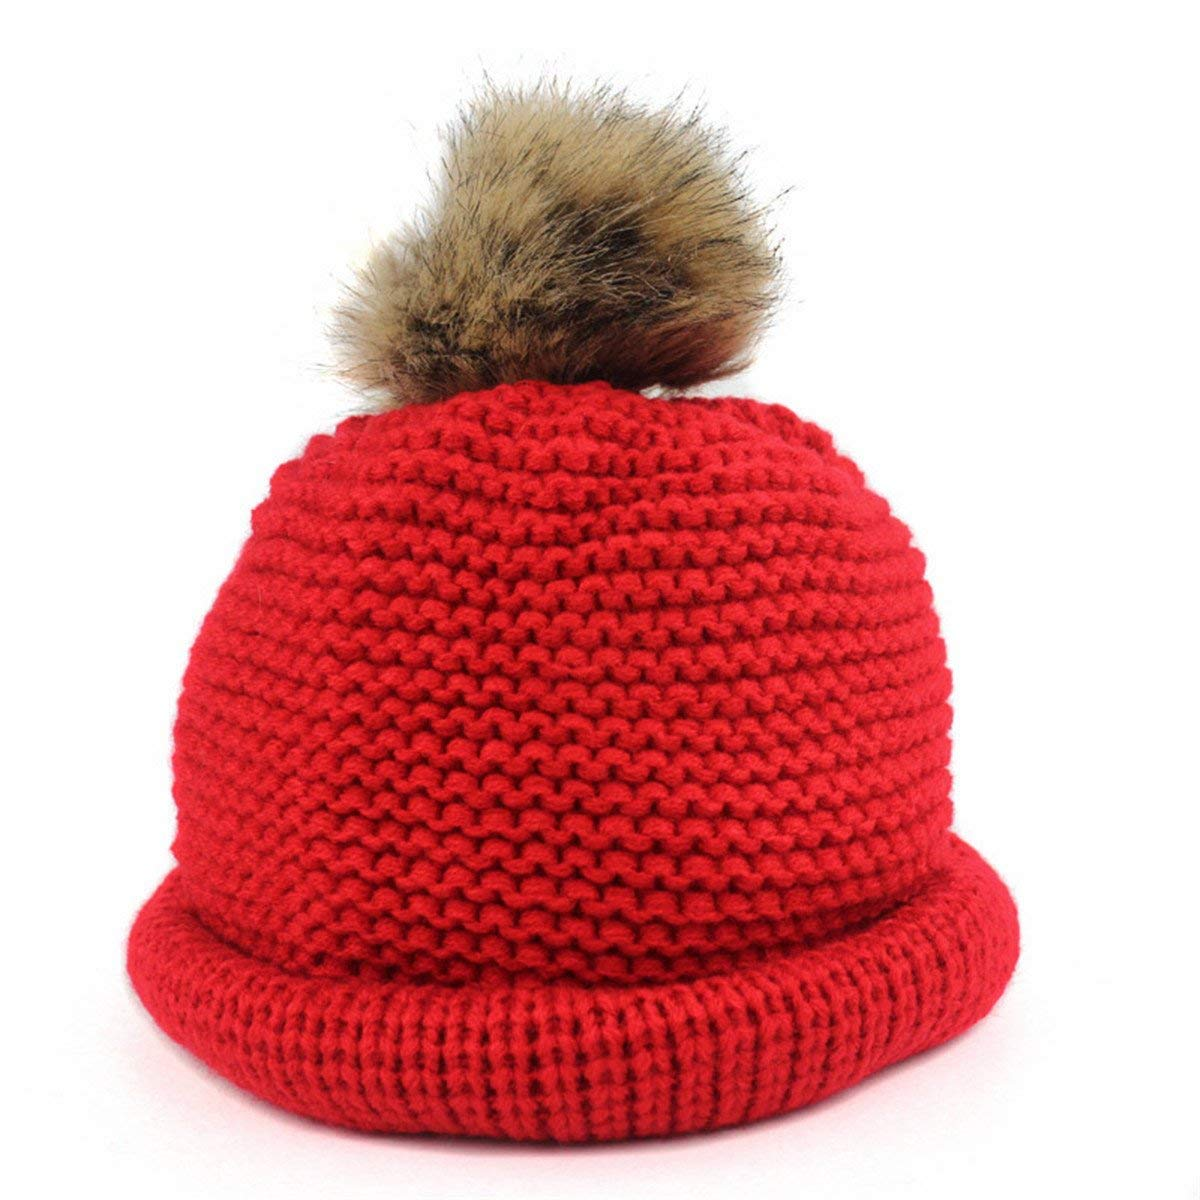 26e3763da99 Get Quotations · Qhome Kids Children Winter Slouchy Knit Beanie Chunky Real  Raccoon Bulb Pom Poms Hat Bobble Hat